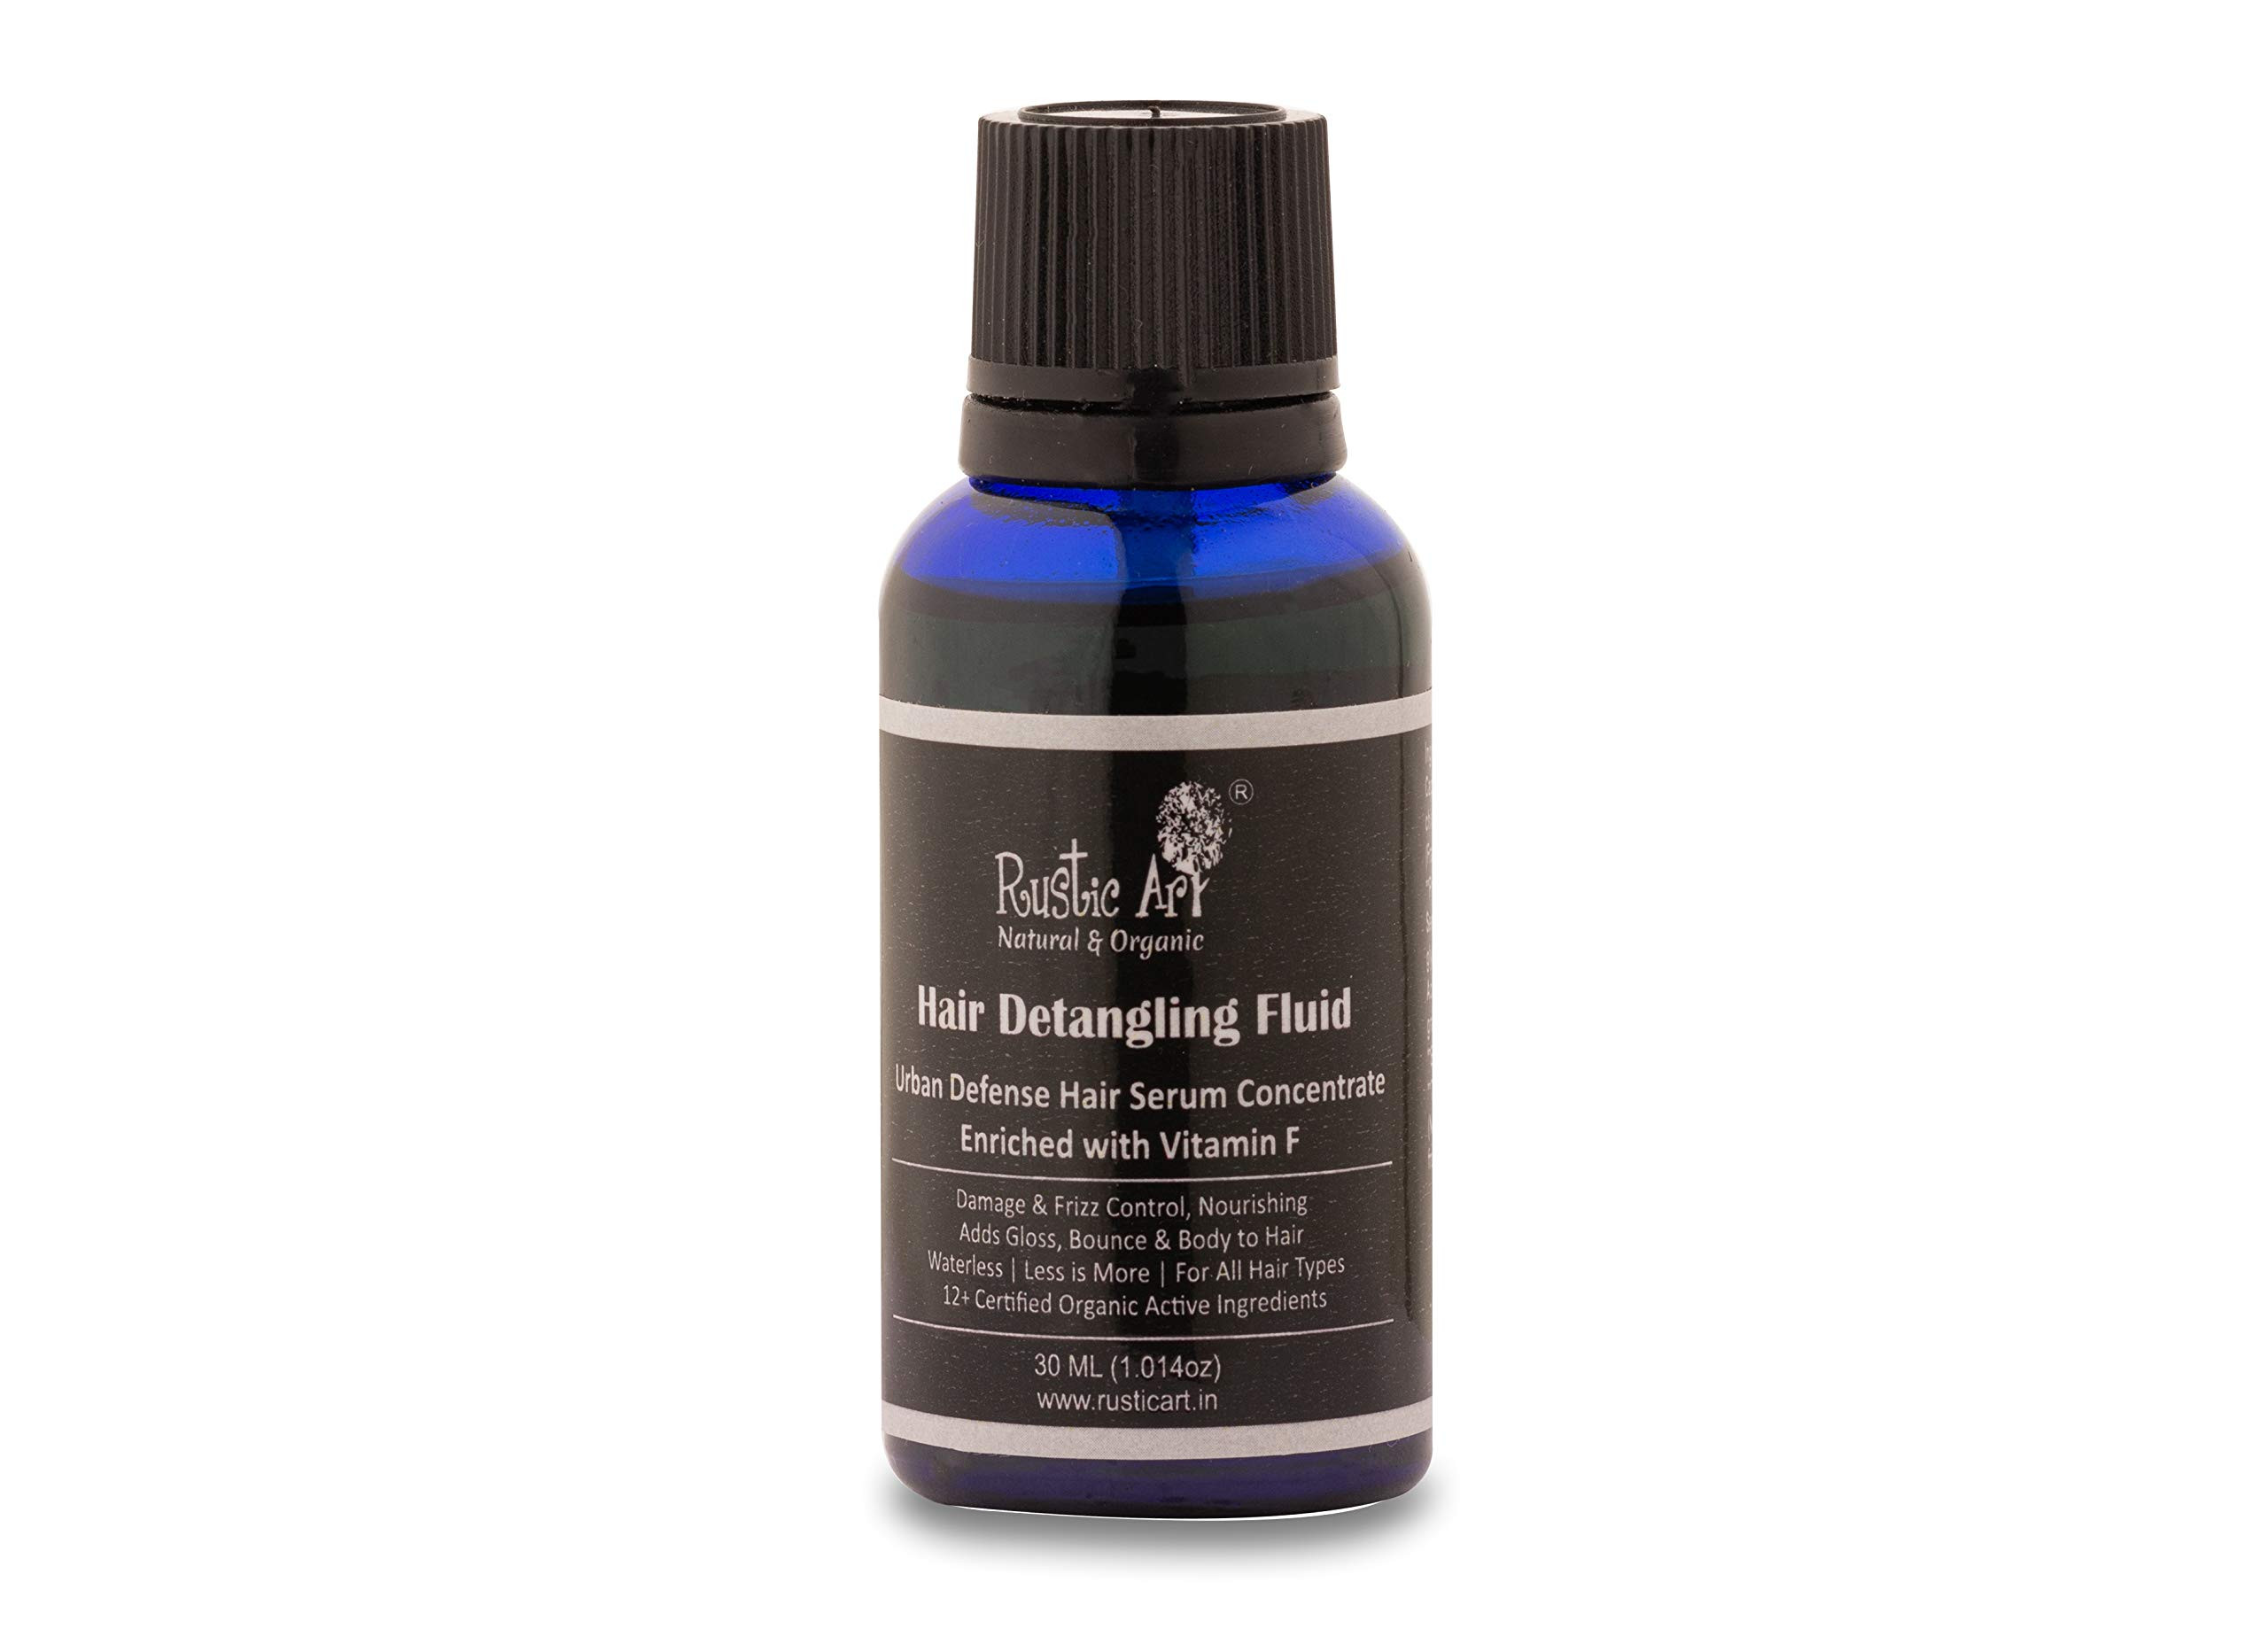 Rustic Art Organic Hair Detangling Fluid with Vit. F | Urban Defense Hair Serum Concentrate | 30 ml